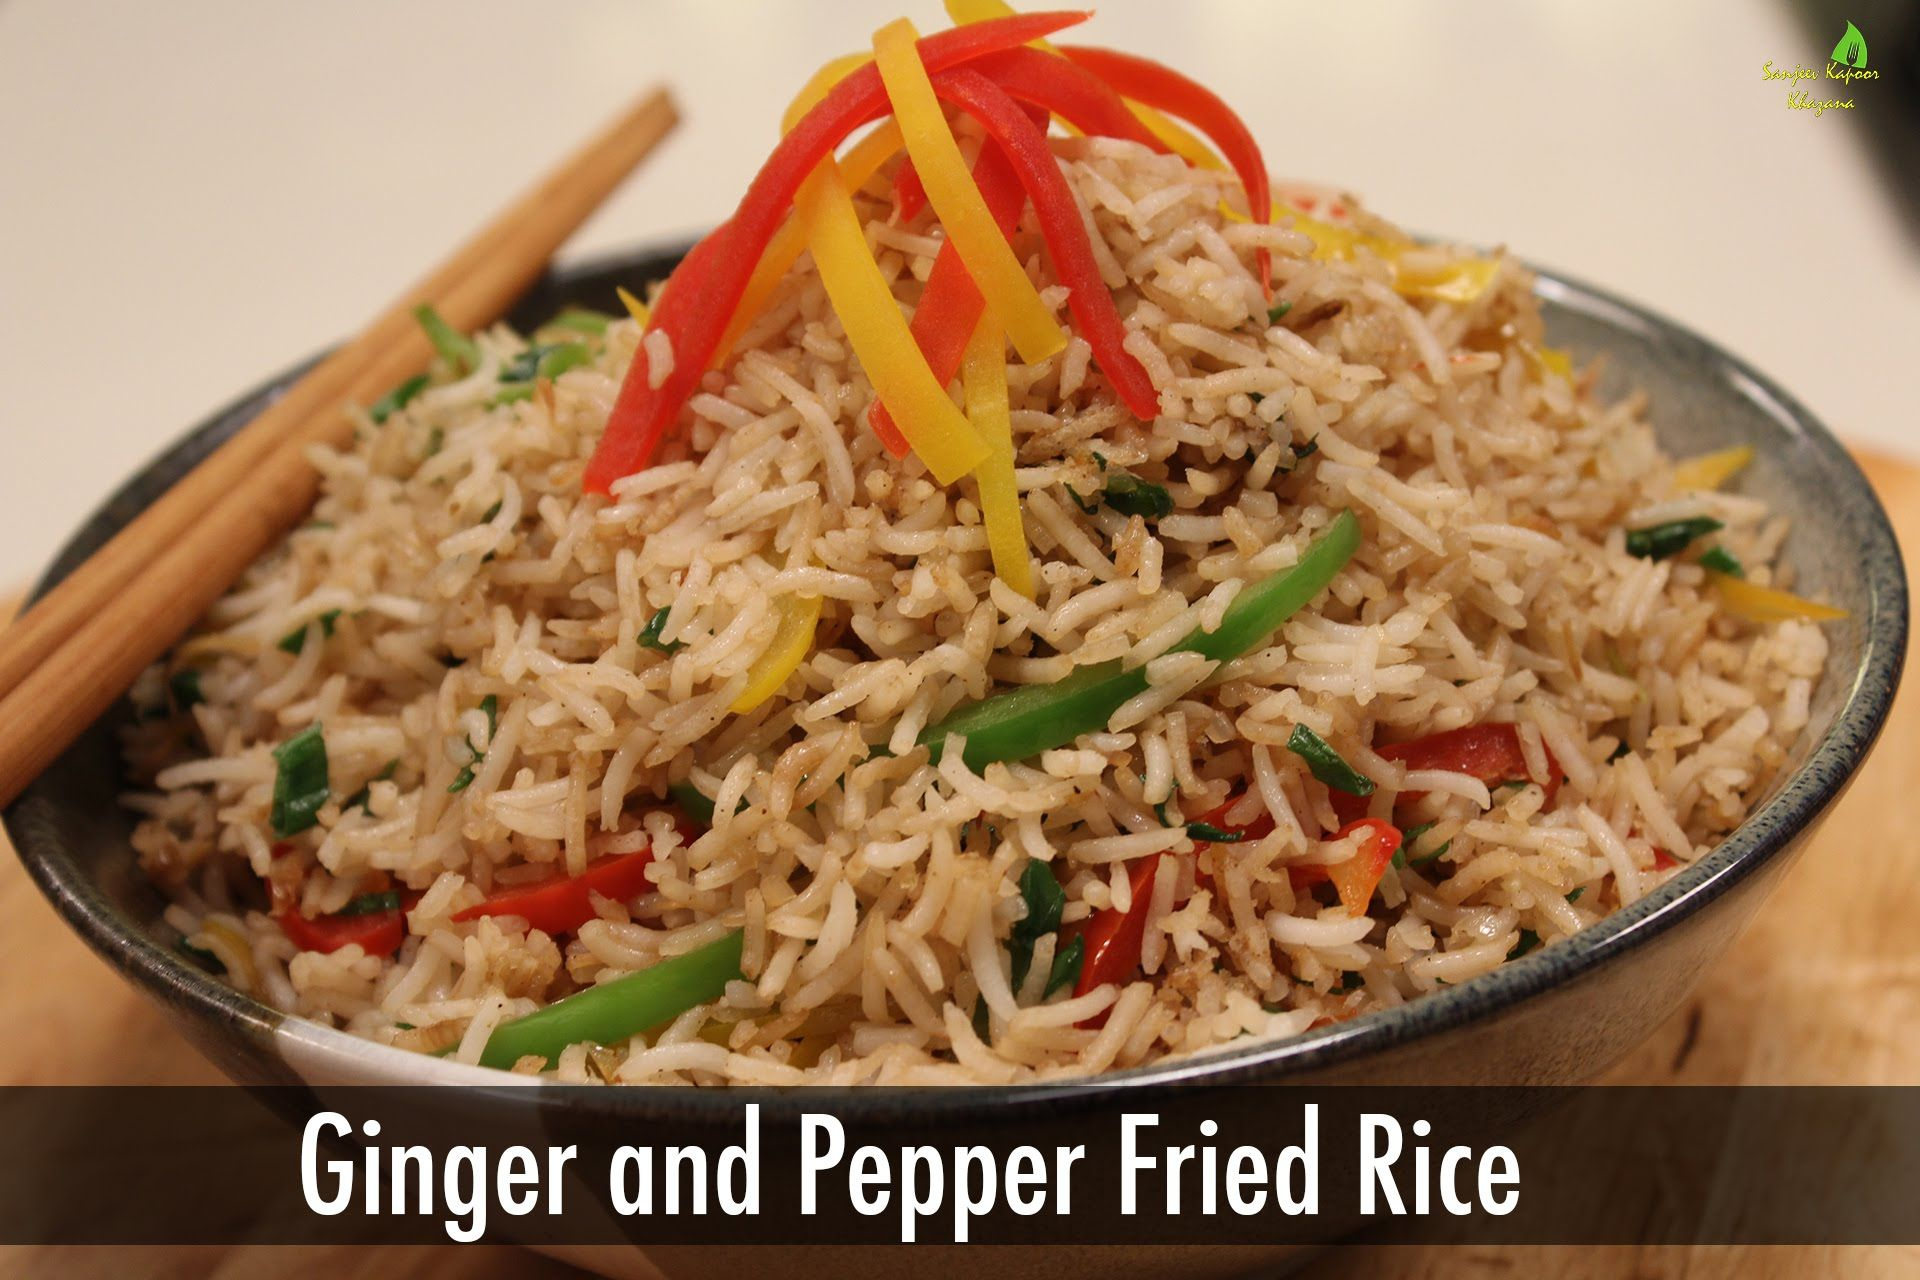 Ginger and pepper fried rice chinese cuisine sanjeev kapoor food ginger and pepper fried rice chinese cuisine sanjeev kapoor khazana forumfinder Choice Image